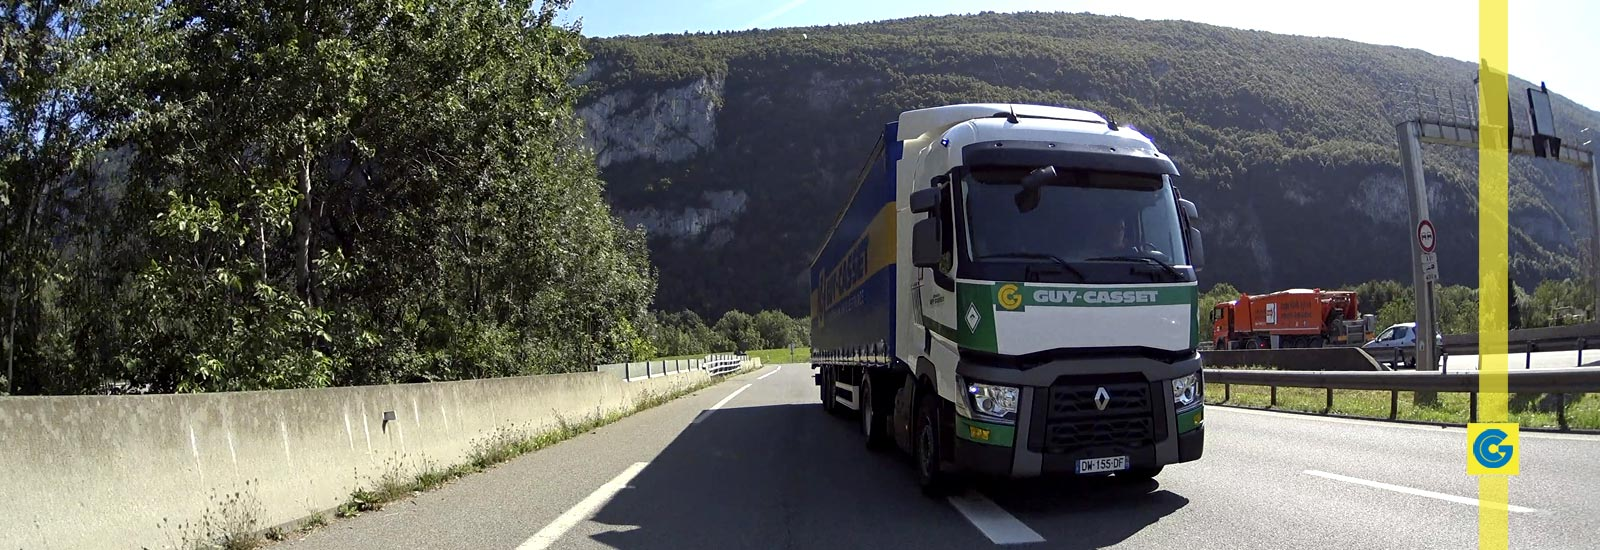 transport-routier-national